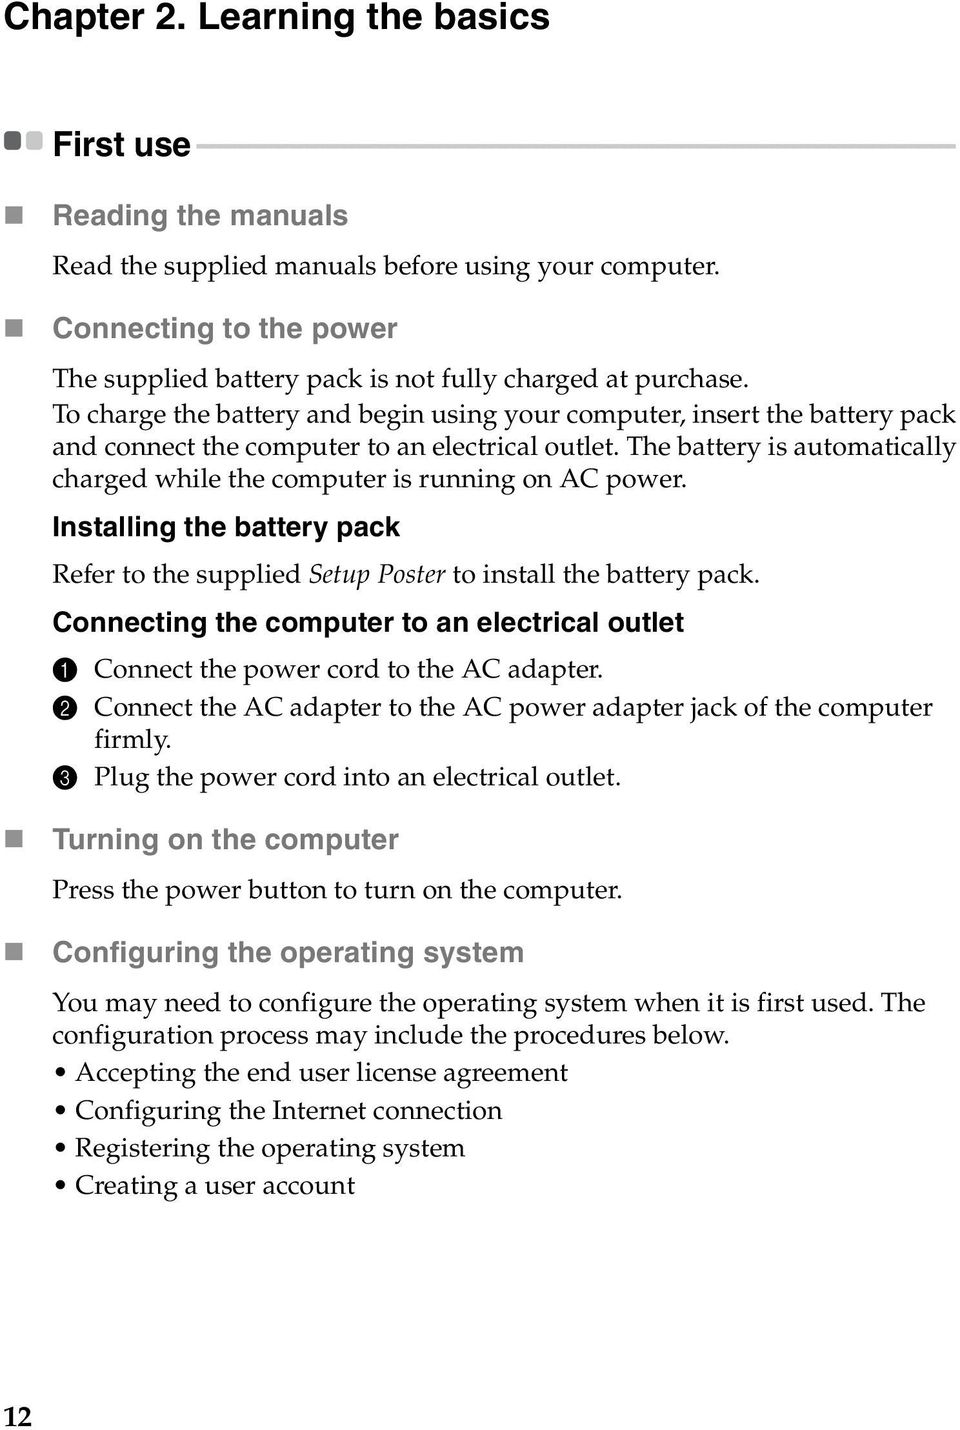 - - - - - - - - - - - - - - - - - - Reading the manuals Read the supplied manuals before using your computer. Connecting to the power The supplied battery pack is not fully charged at purchase.